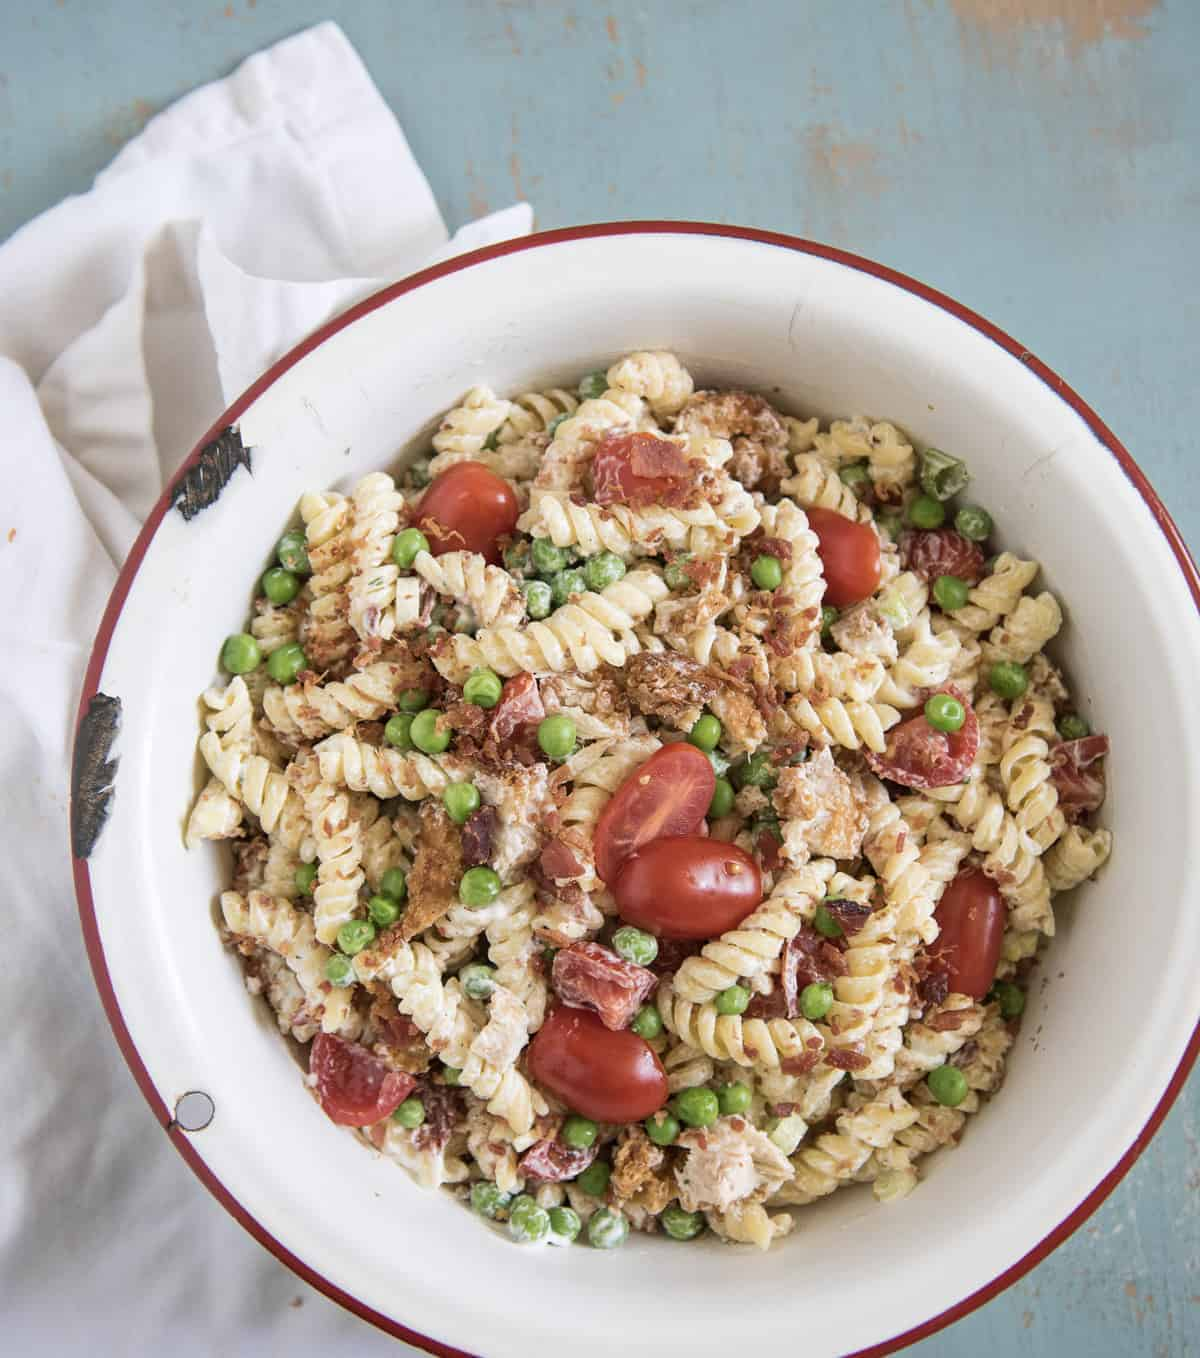 Chicken Bacon Ranch Pasta Salad is our favorite pasta salad recipe that comes together in about 20 minutes and the whole family loves it.